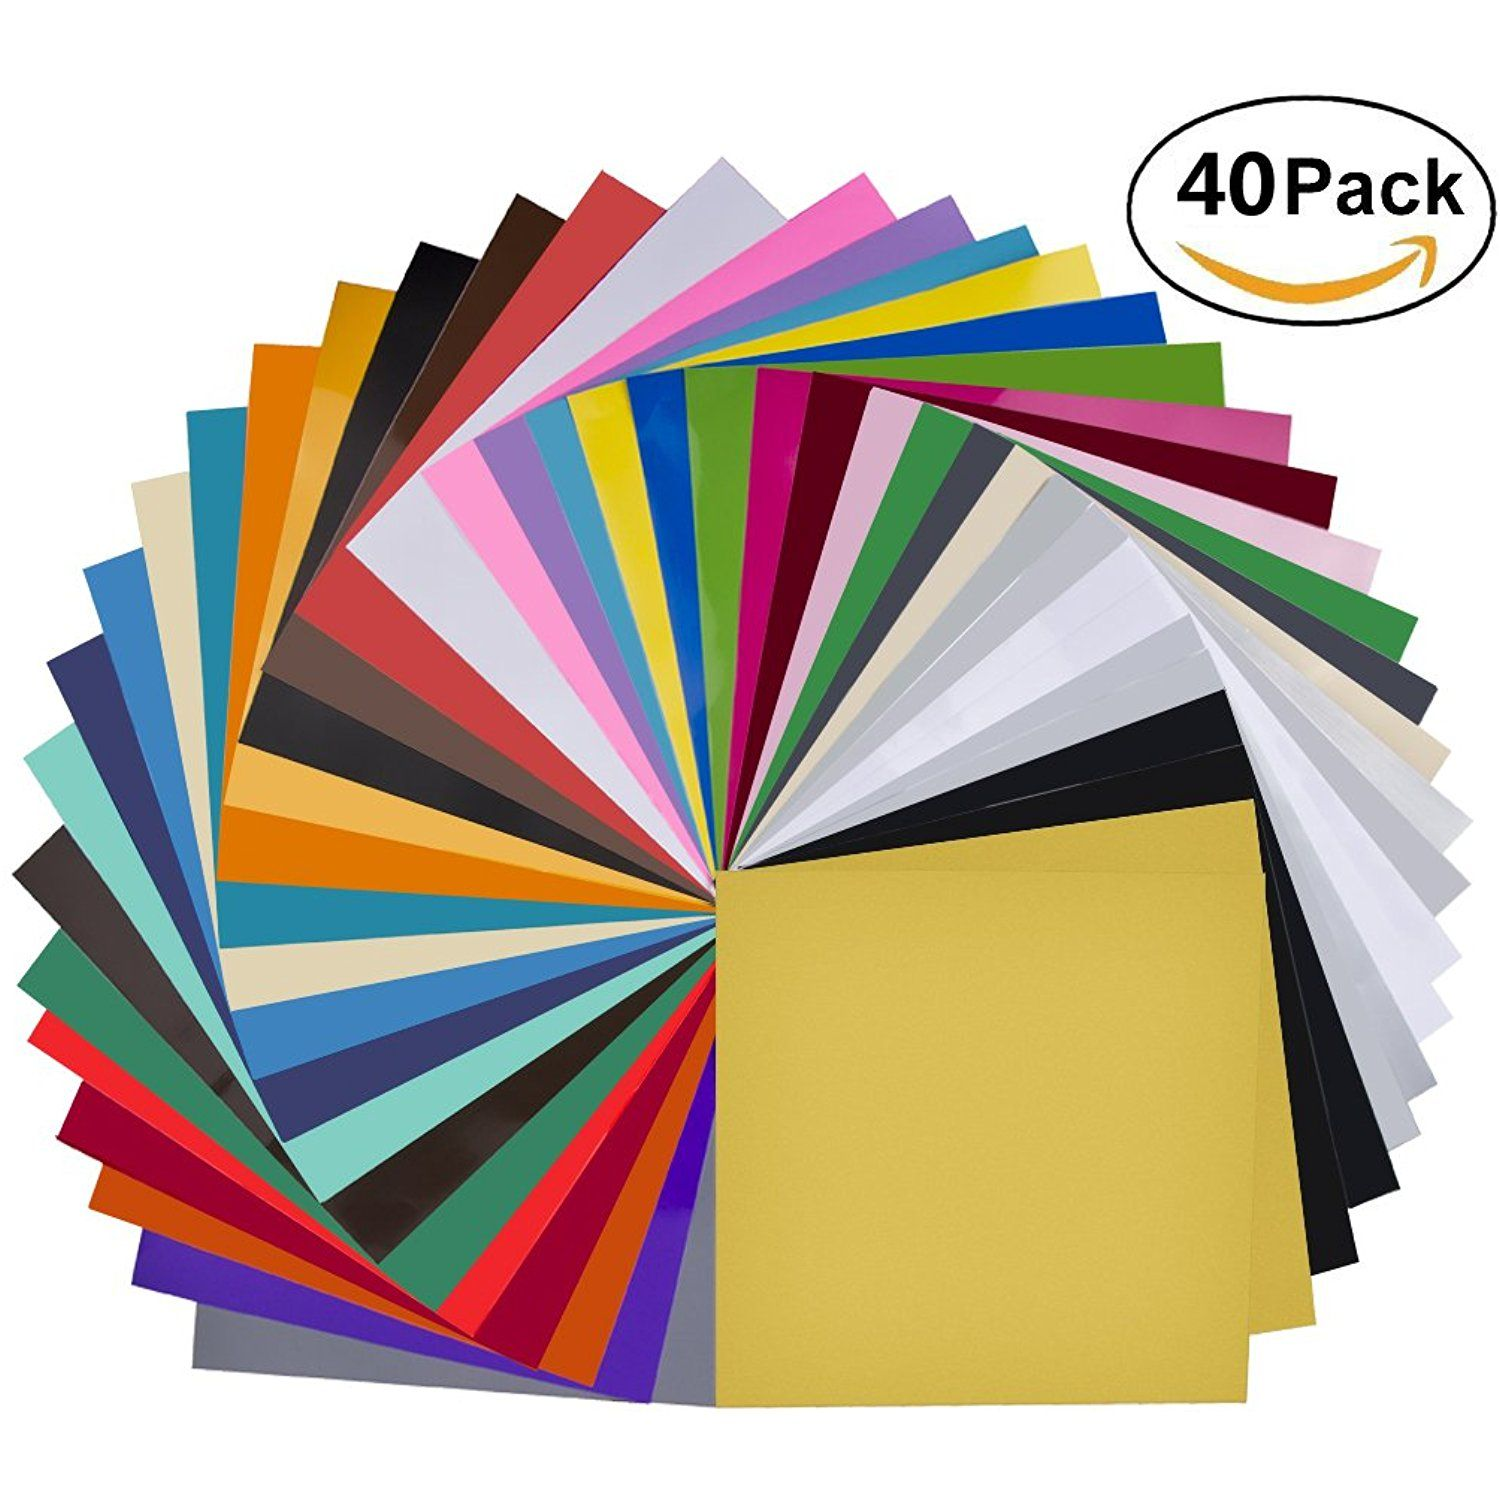 40 Pack 12 X 12 Premium Permanent Self Adhesive Vinyl Sheets Assorted Colors Glossy Matt Silhouette Cameo Crafts Adhesive Vinyl Sheets Arts Crafts Sewing